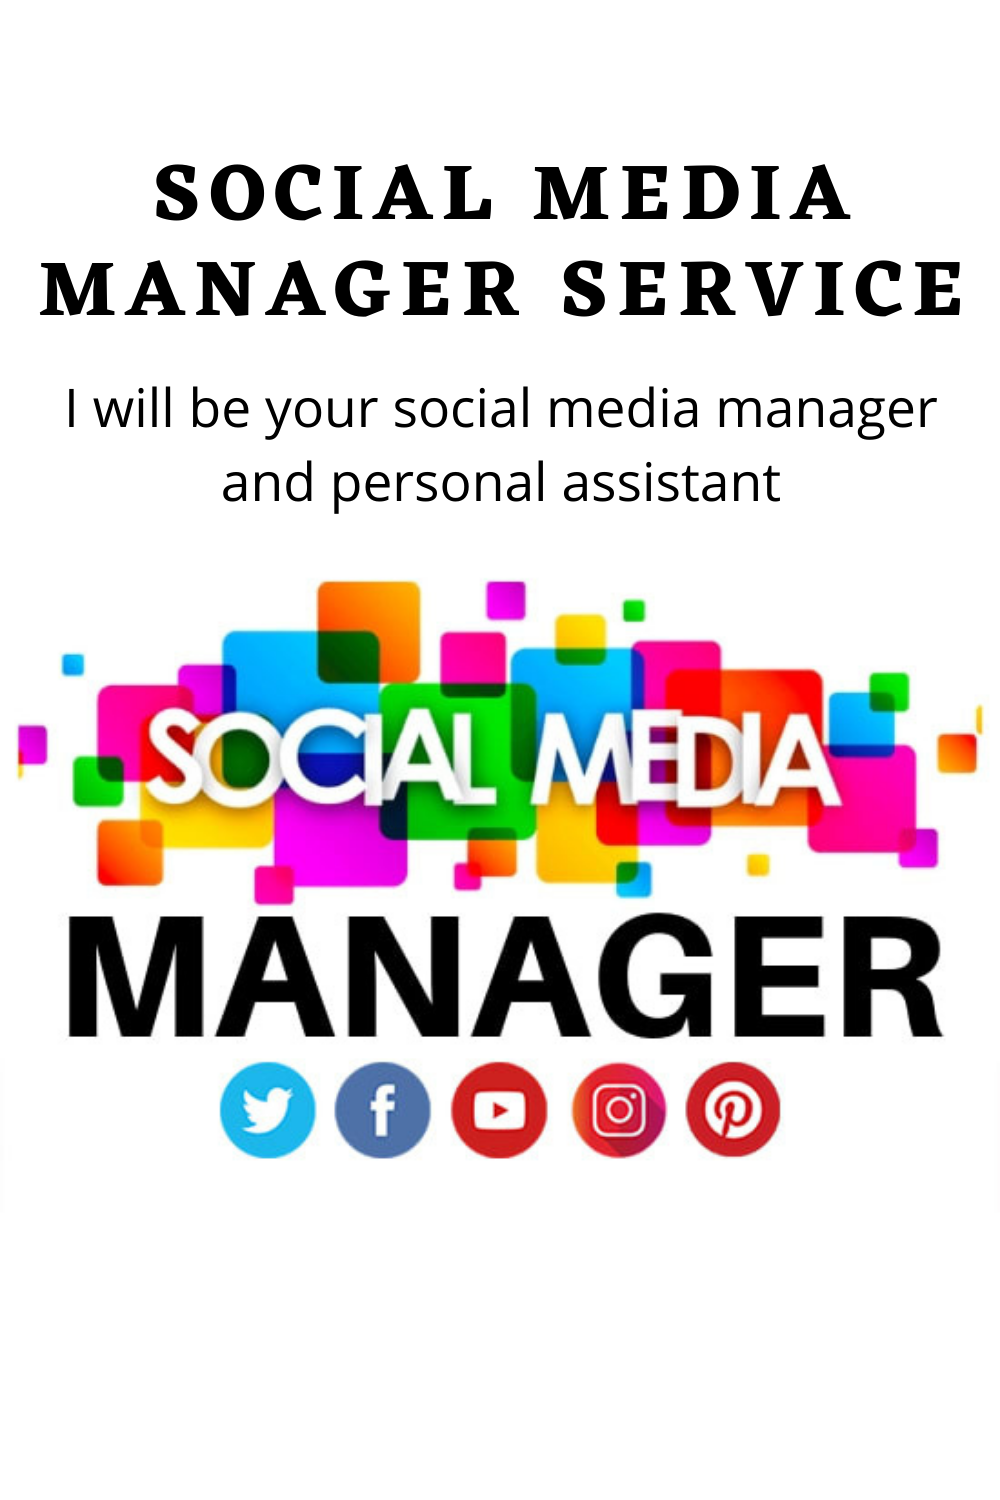 I will be your social media manager and personal assistant, #socialmediainfluencer #socialmediaandmarketing #socialmediasizing #socialmediavideo #socialmediaresources #socialmediaflyer #marketingandsocialmedia #socialmediaexaminer #socialmediaagency #bloggingandsocialmediatips #socialmediastatistics #socialmediaposter #socialmediafornetworkmarketers #socialmediaanalytics #socialmediamanagementtools #lularoesocialmediagraphics #bloggingsocialmediatips #socialmediablog #socialmediasafety